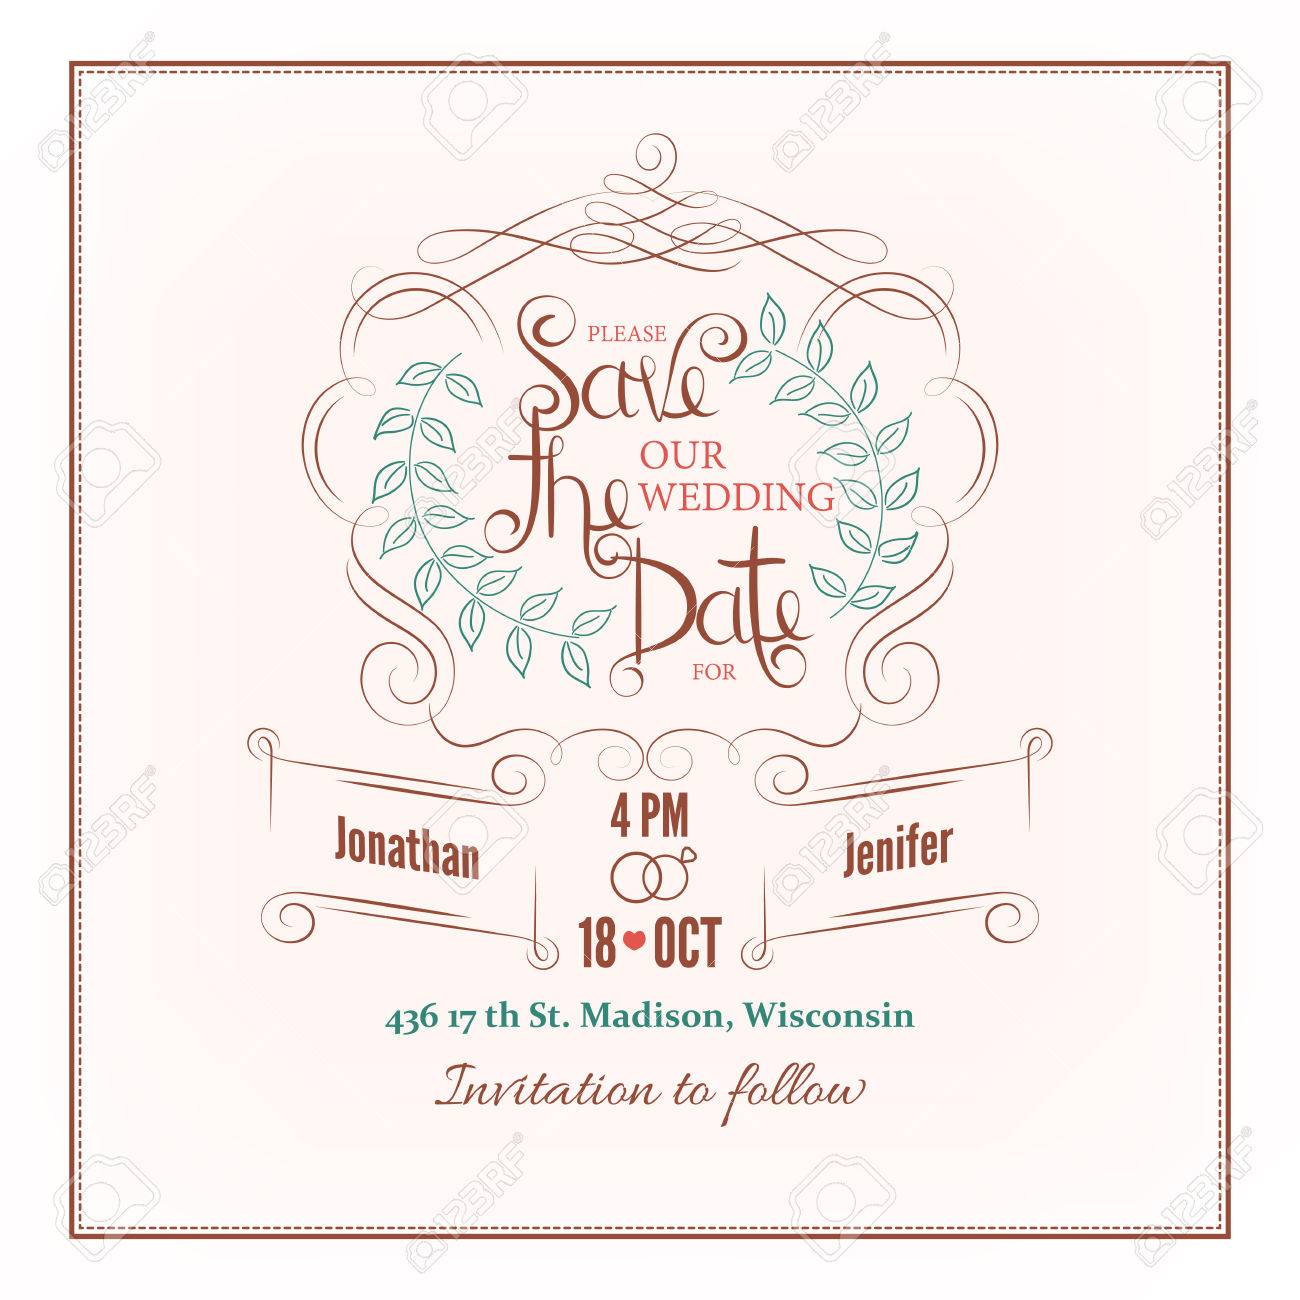 Save The Date Calligraphy Wedding Invitation Card Royalty Free ...